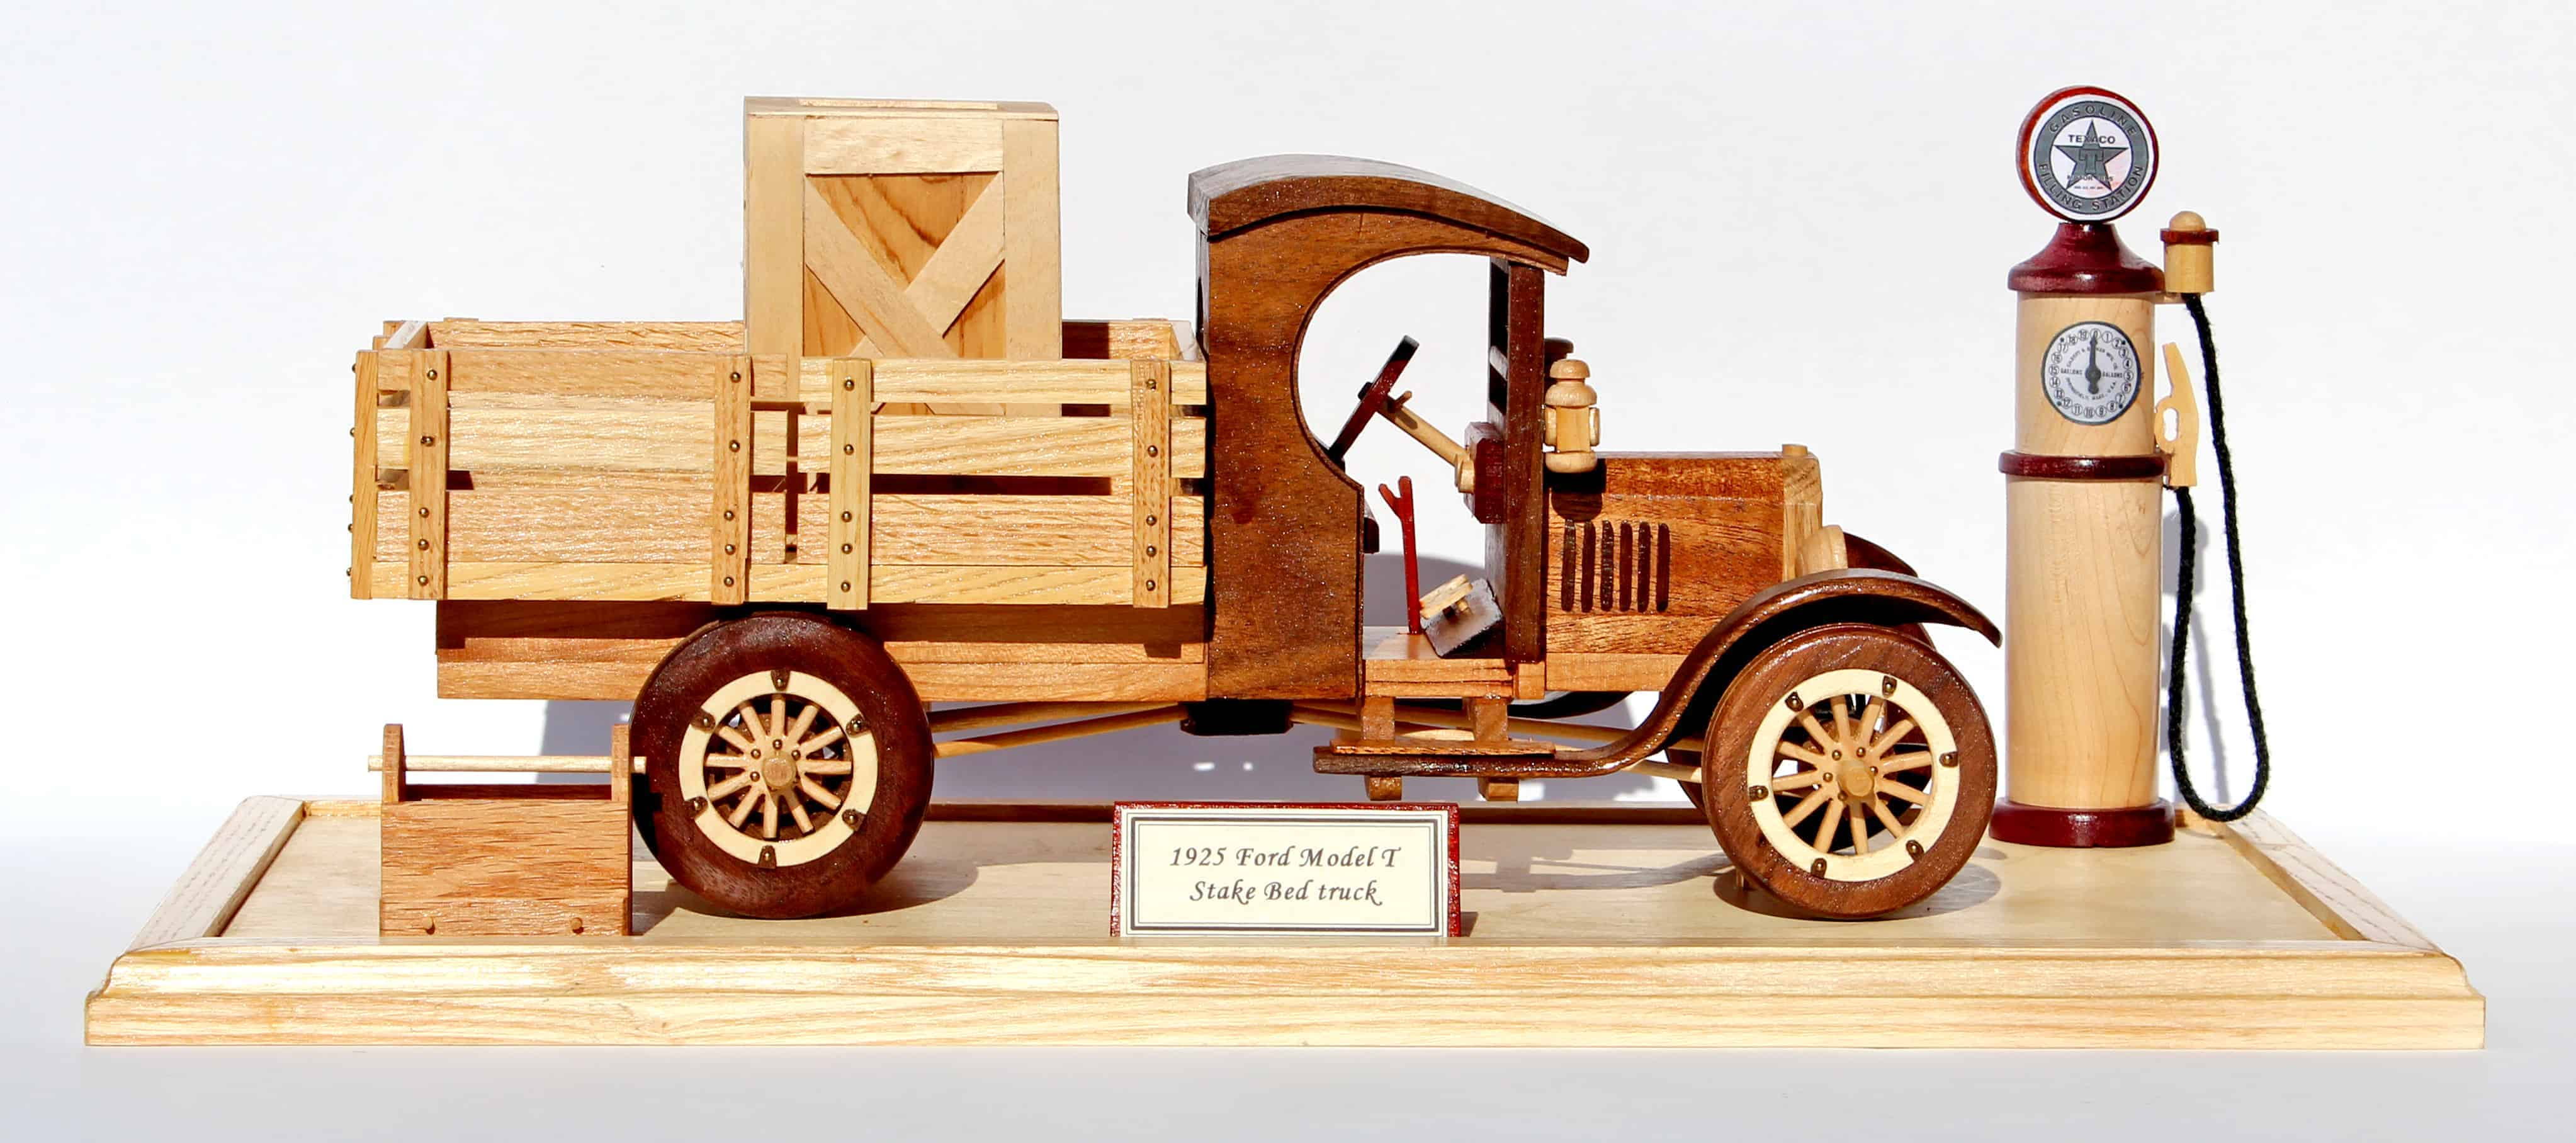 Ford Truck Side View